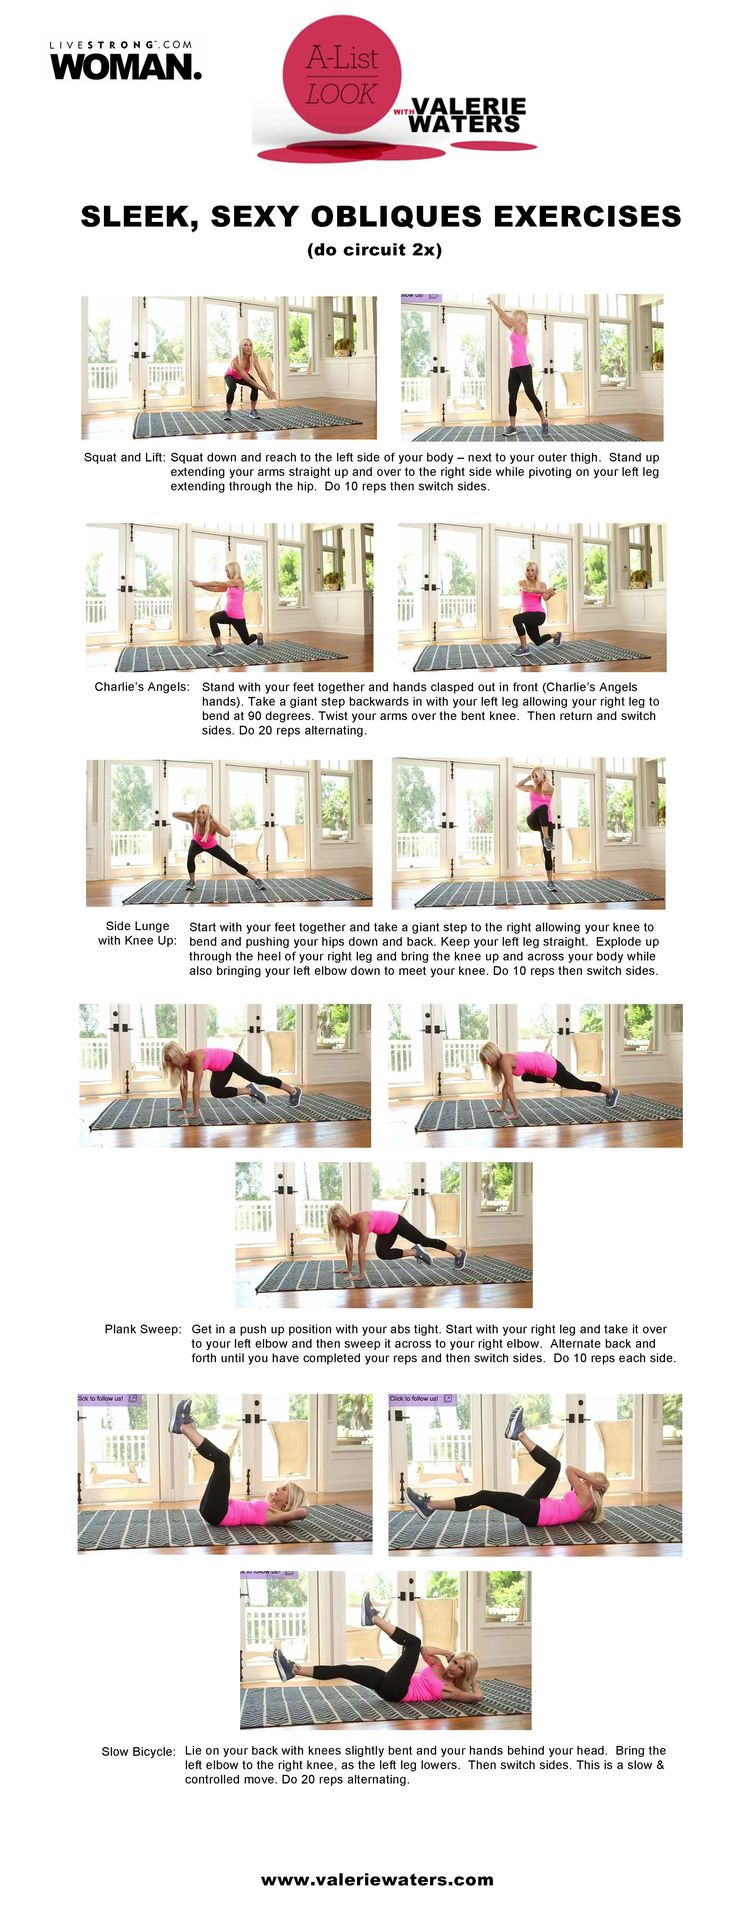 Sleek, Sexy Obliques Exercises @LIVESTRONG.COM| A-List Look With Valerie Waters printable workout sheets.